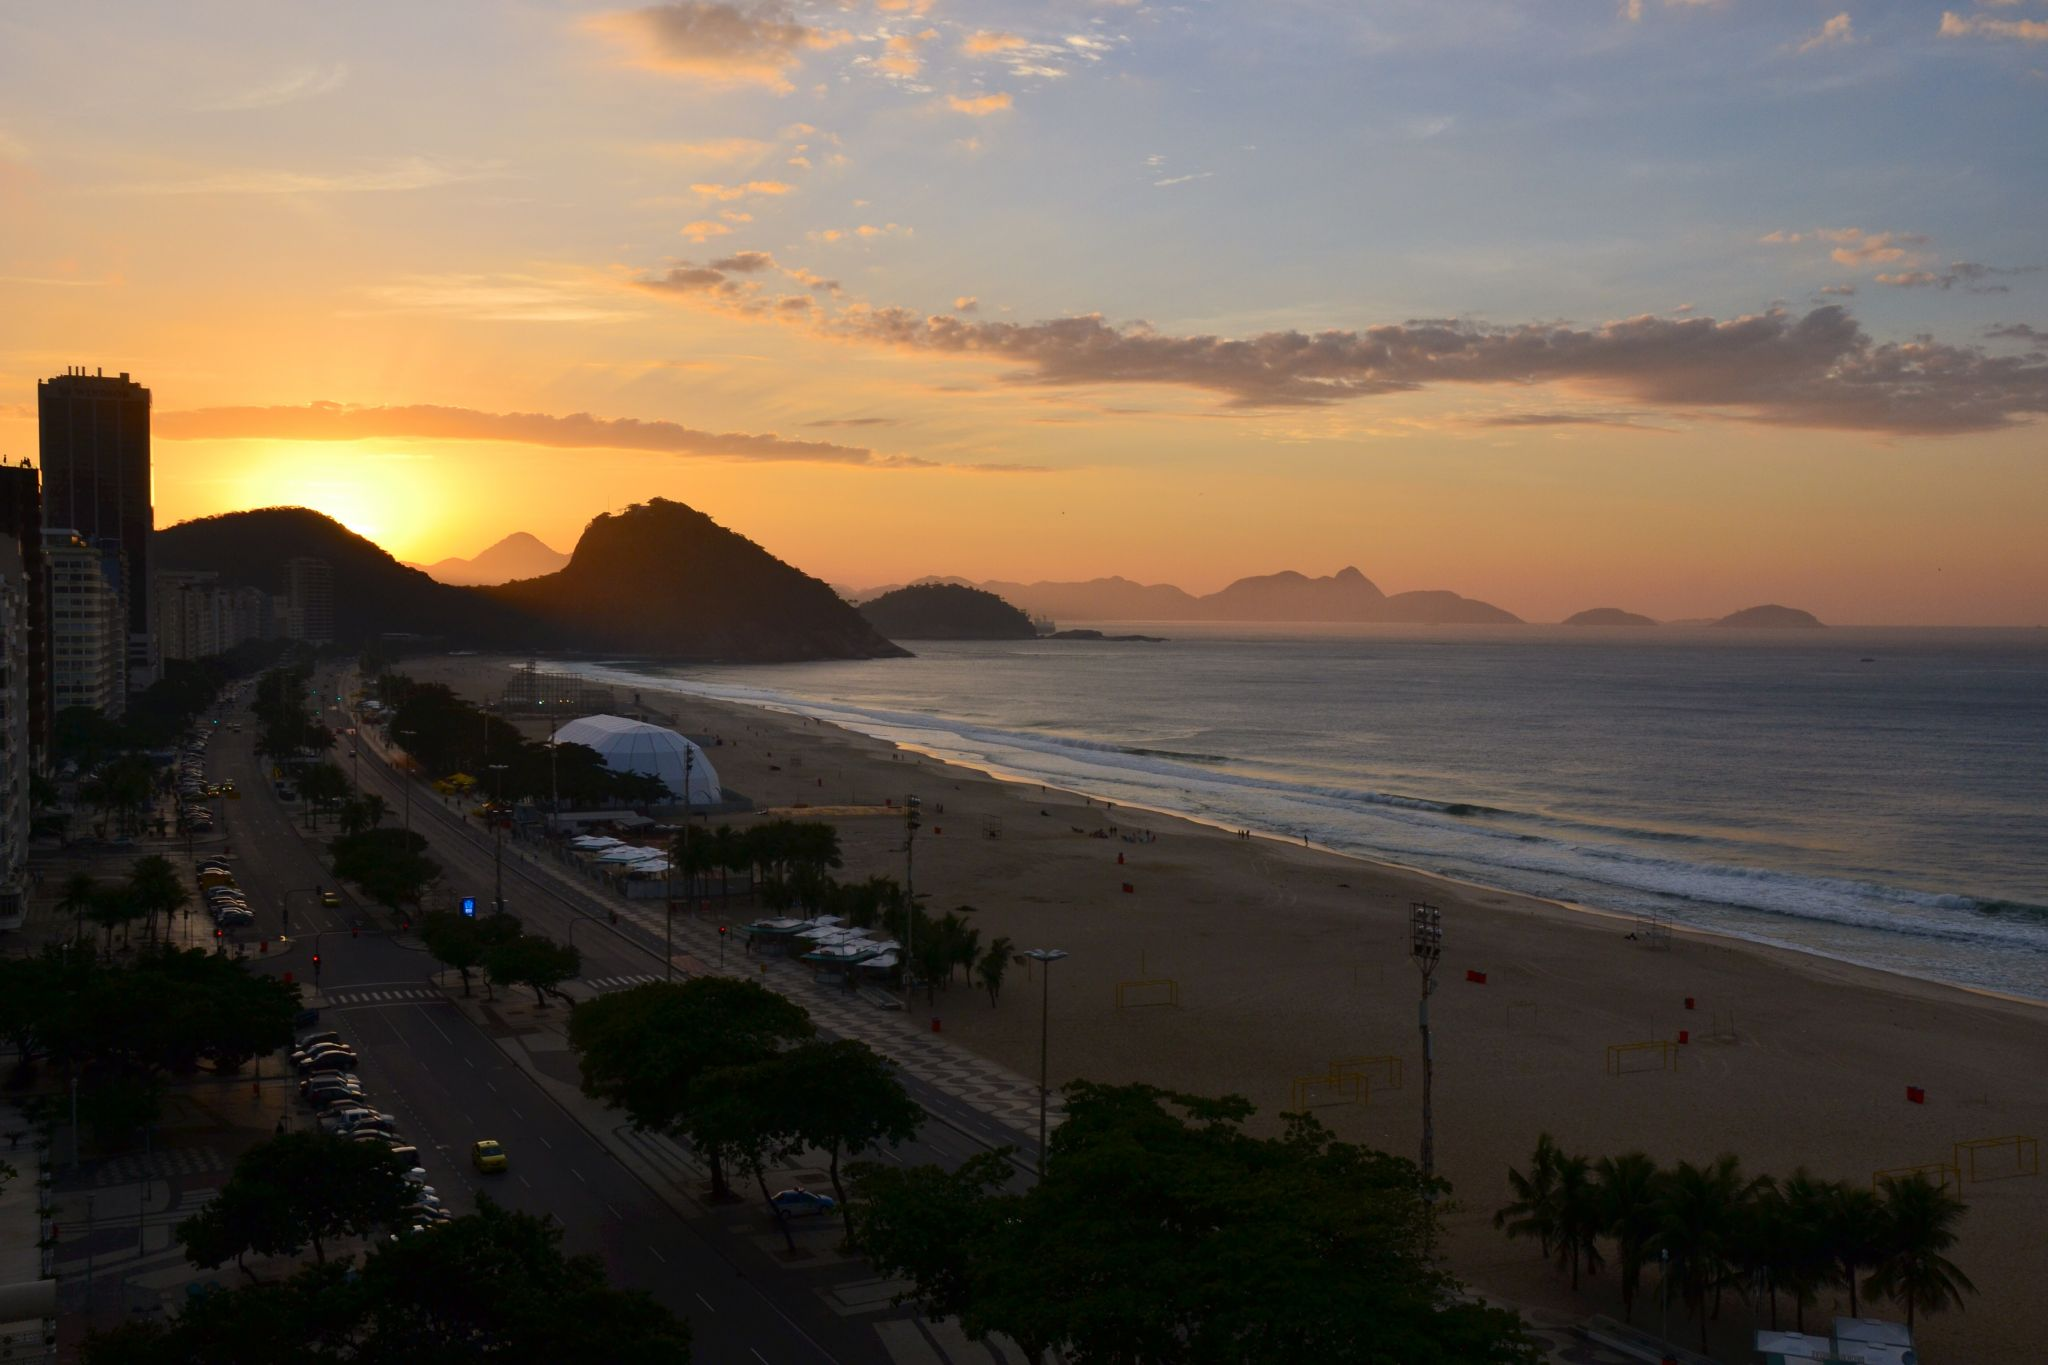 Sunrise over Copacabana beach from one of the hotels., Brazil